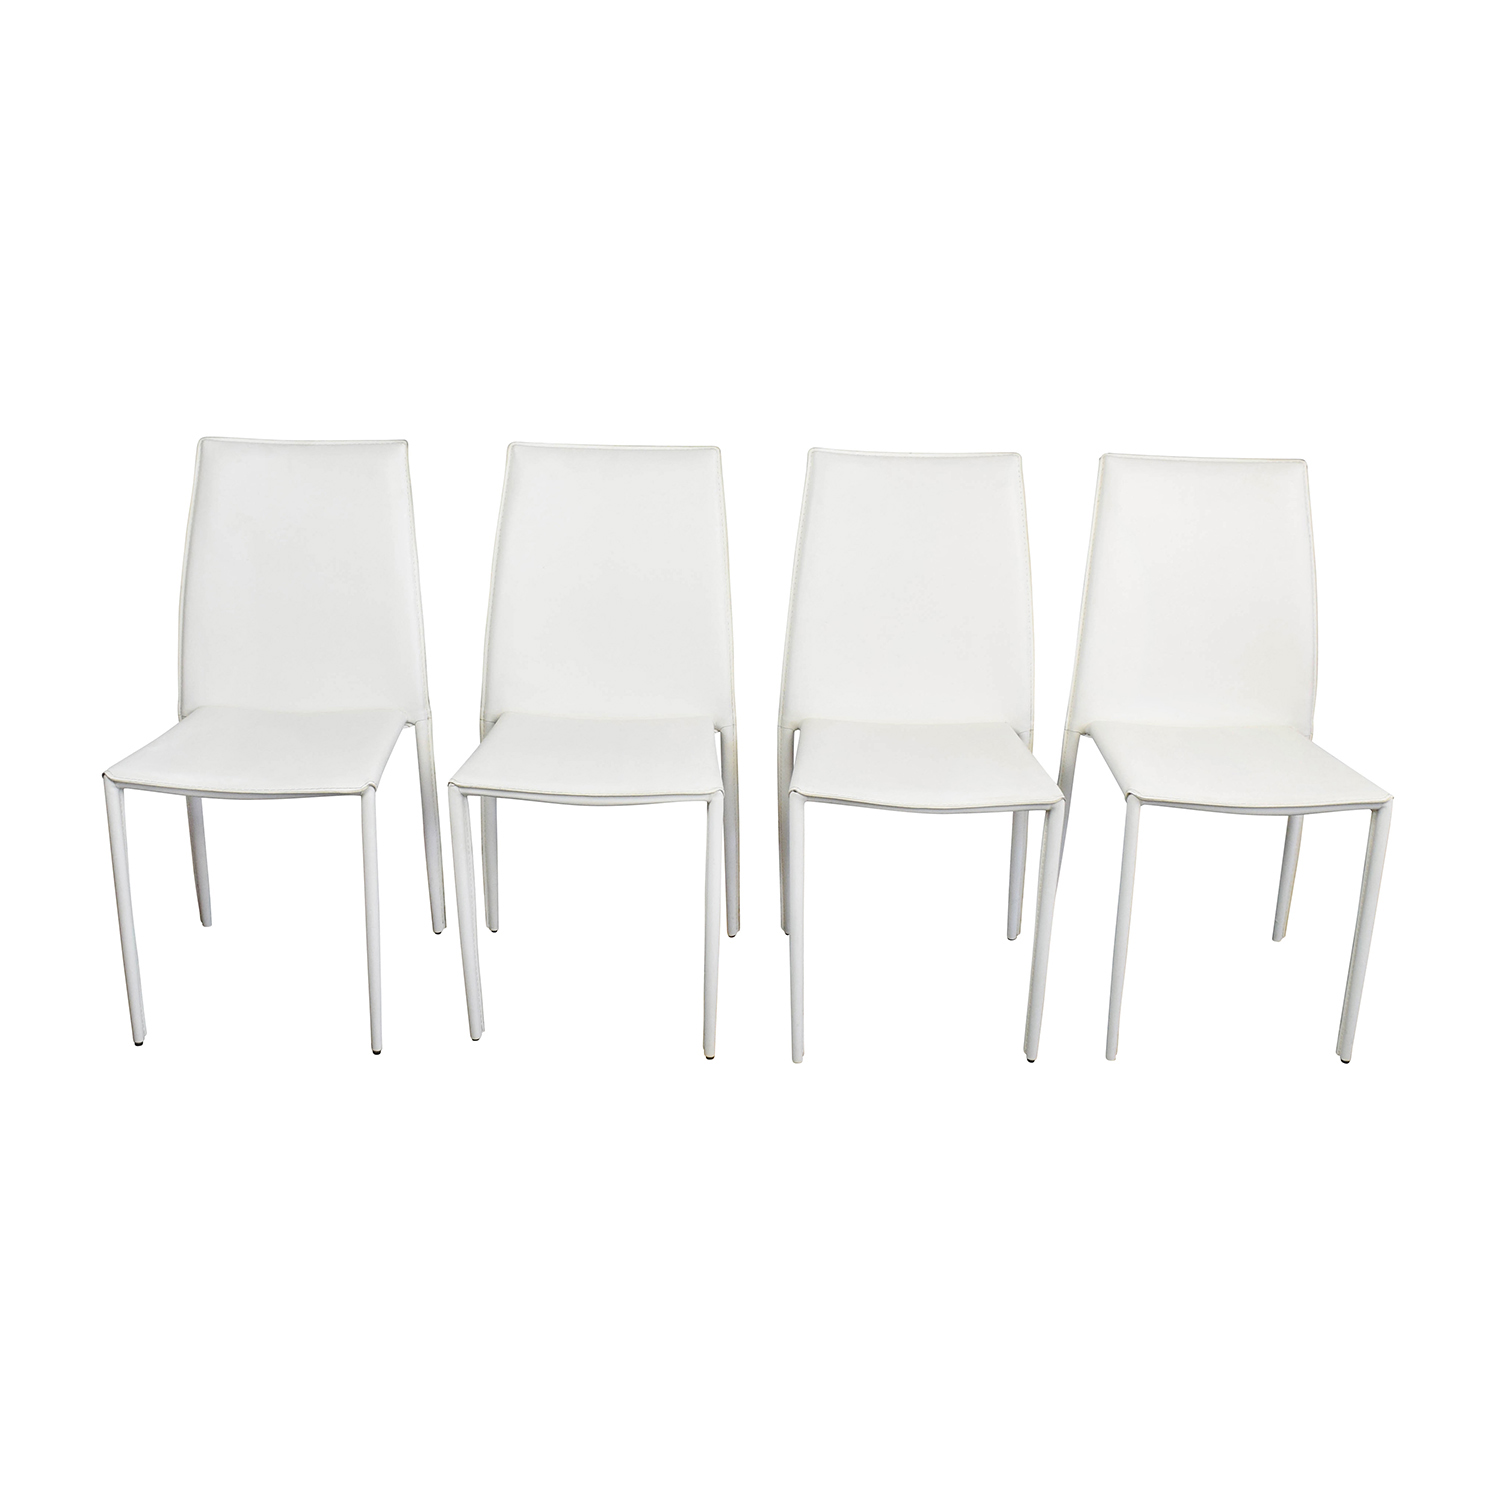 Swell 77 Off Allmodern All Modern White Leather Dining Chairs Chairs Caraccident5 Cool Chair Designs And Ideas Caraccident5Info